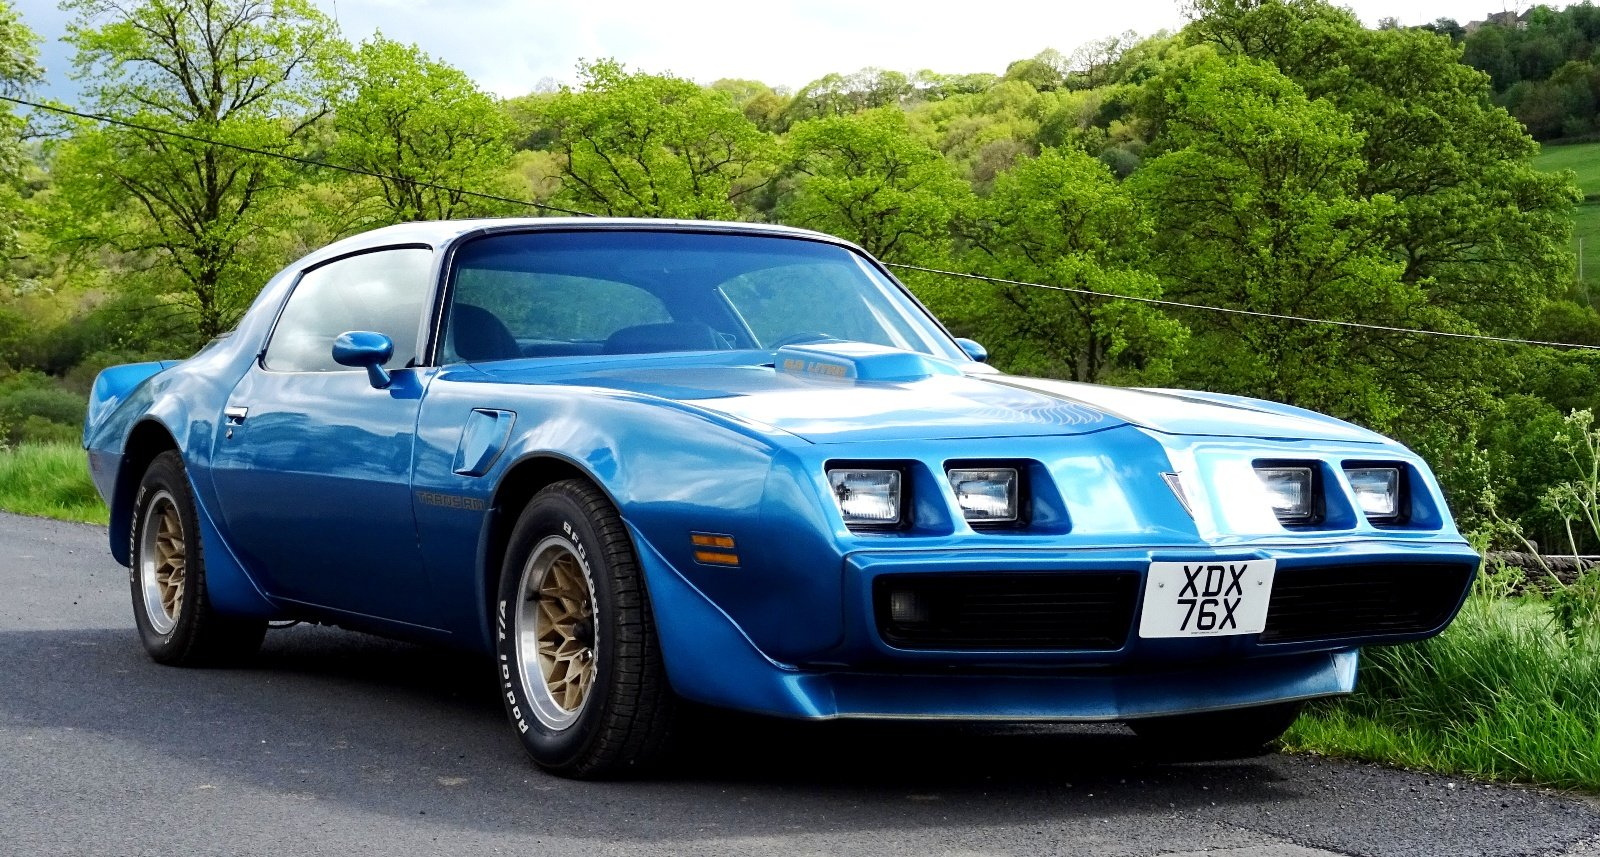 1980 PONTIAC FIREBIRD TRANS AM 6.6 LITRE V8 AMERICAN MUSCLE CAR For Sale (picture 1 of 6)